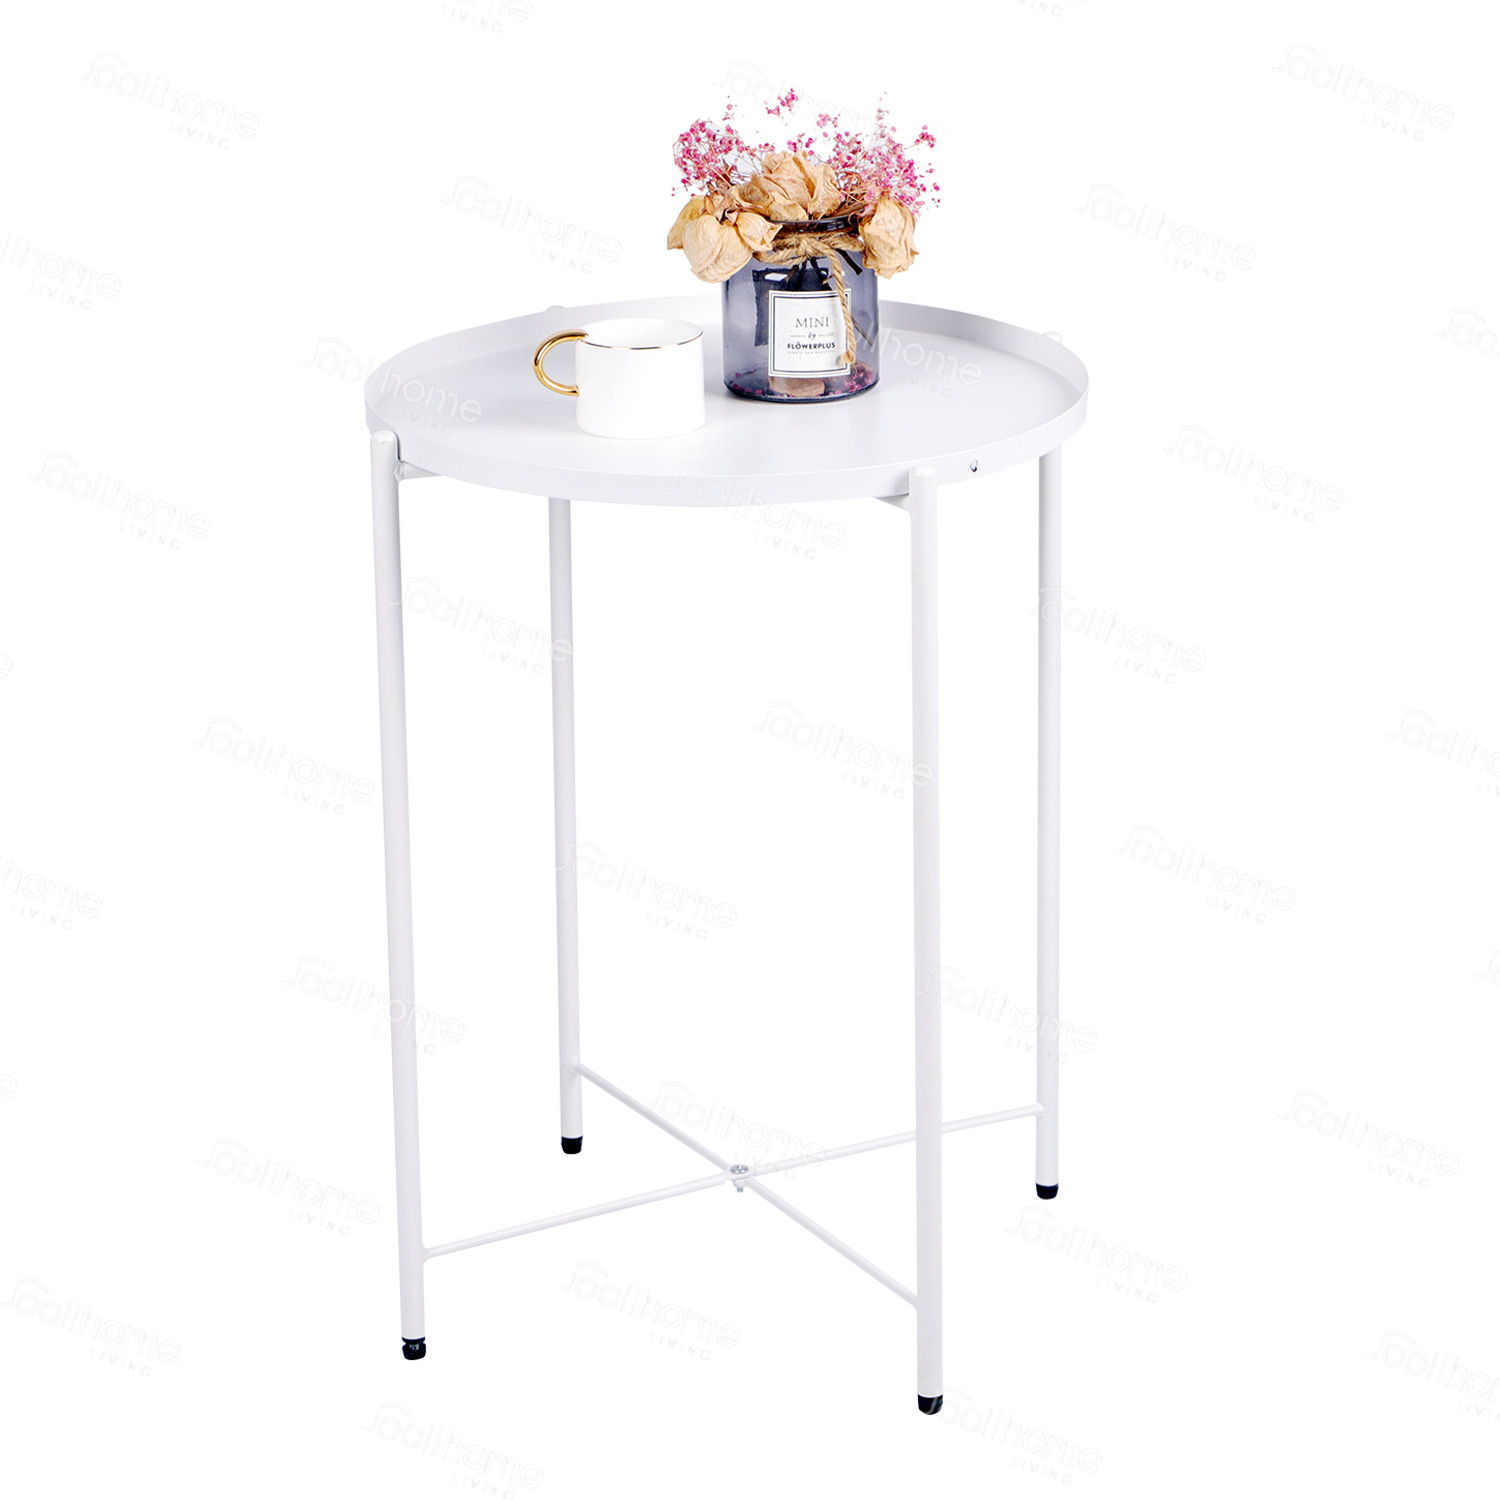 Small Round Sofa Side Table With Detachable Tray Top Terrace Garden Outdoor Indoor Snack Coffee Table For Living Room Joolihome Metal End Table Bedroom Balcony Hallway Black End Tables